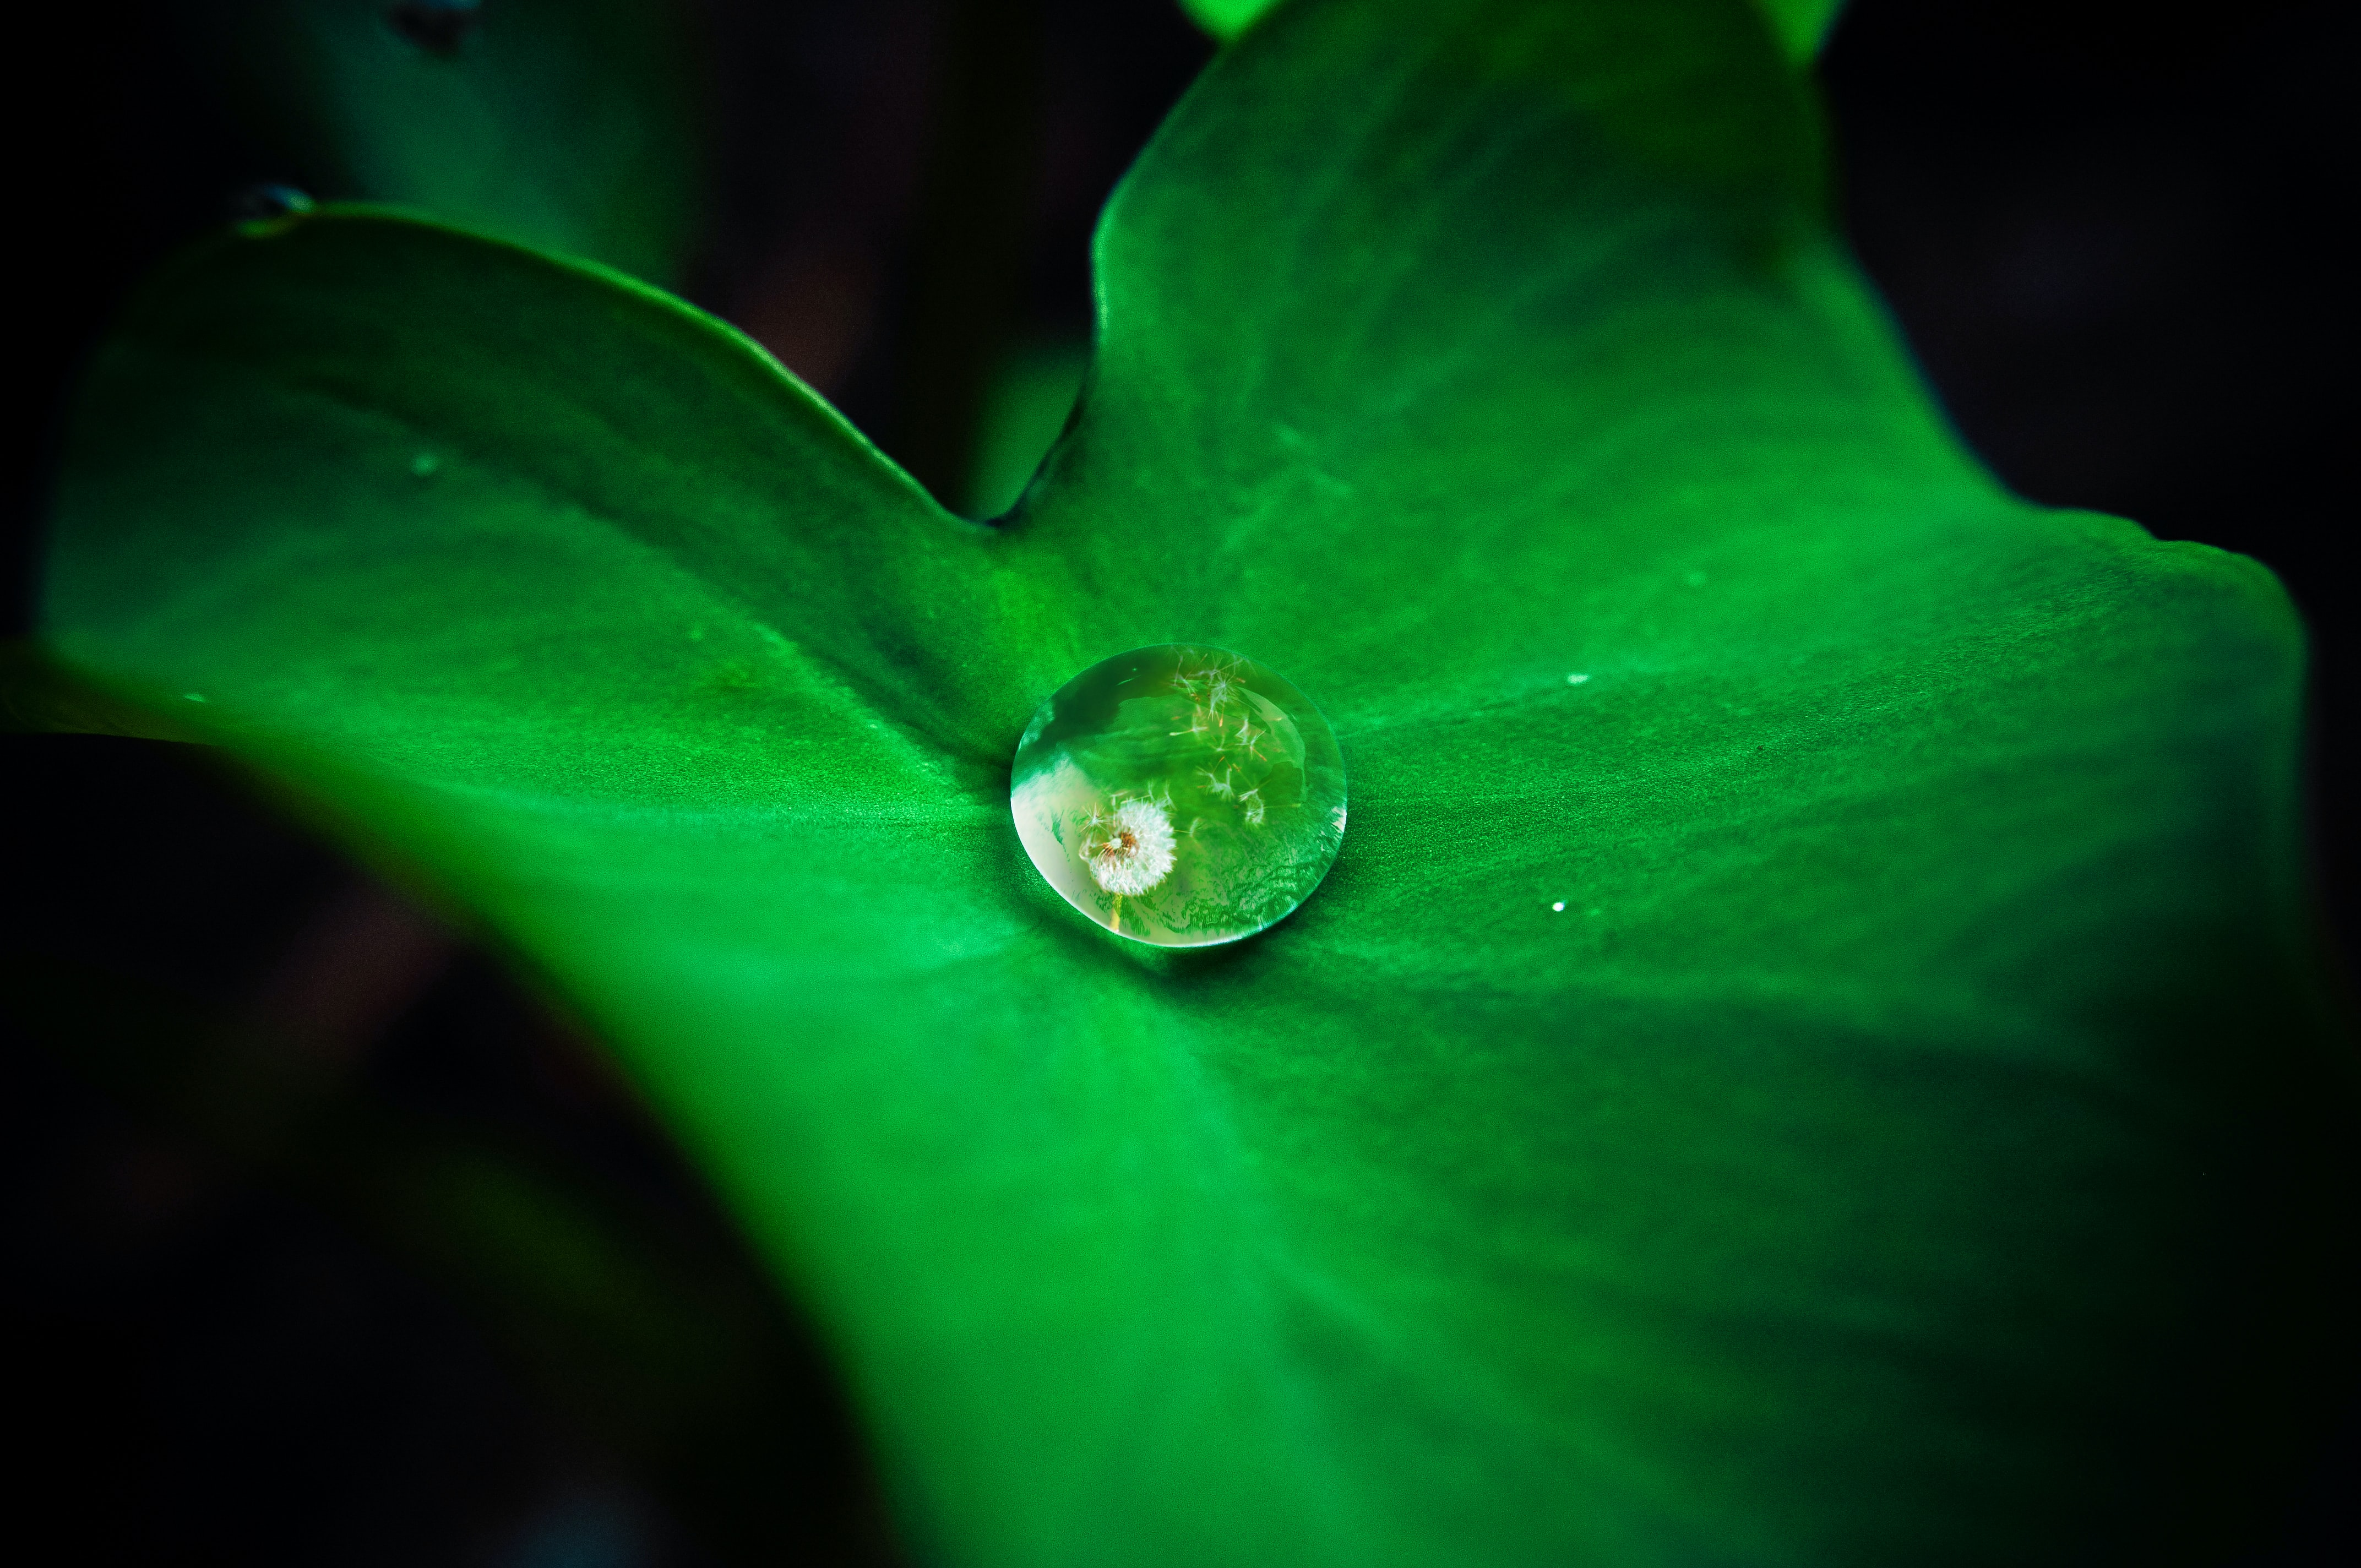 water drops on green leaf time lapse photography